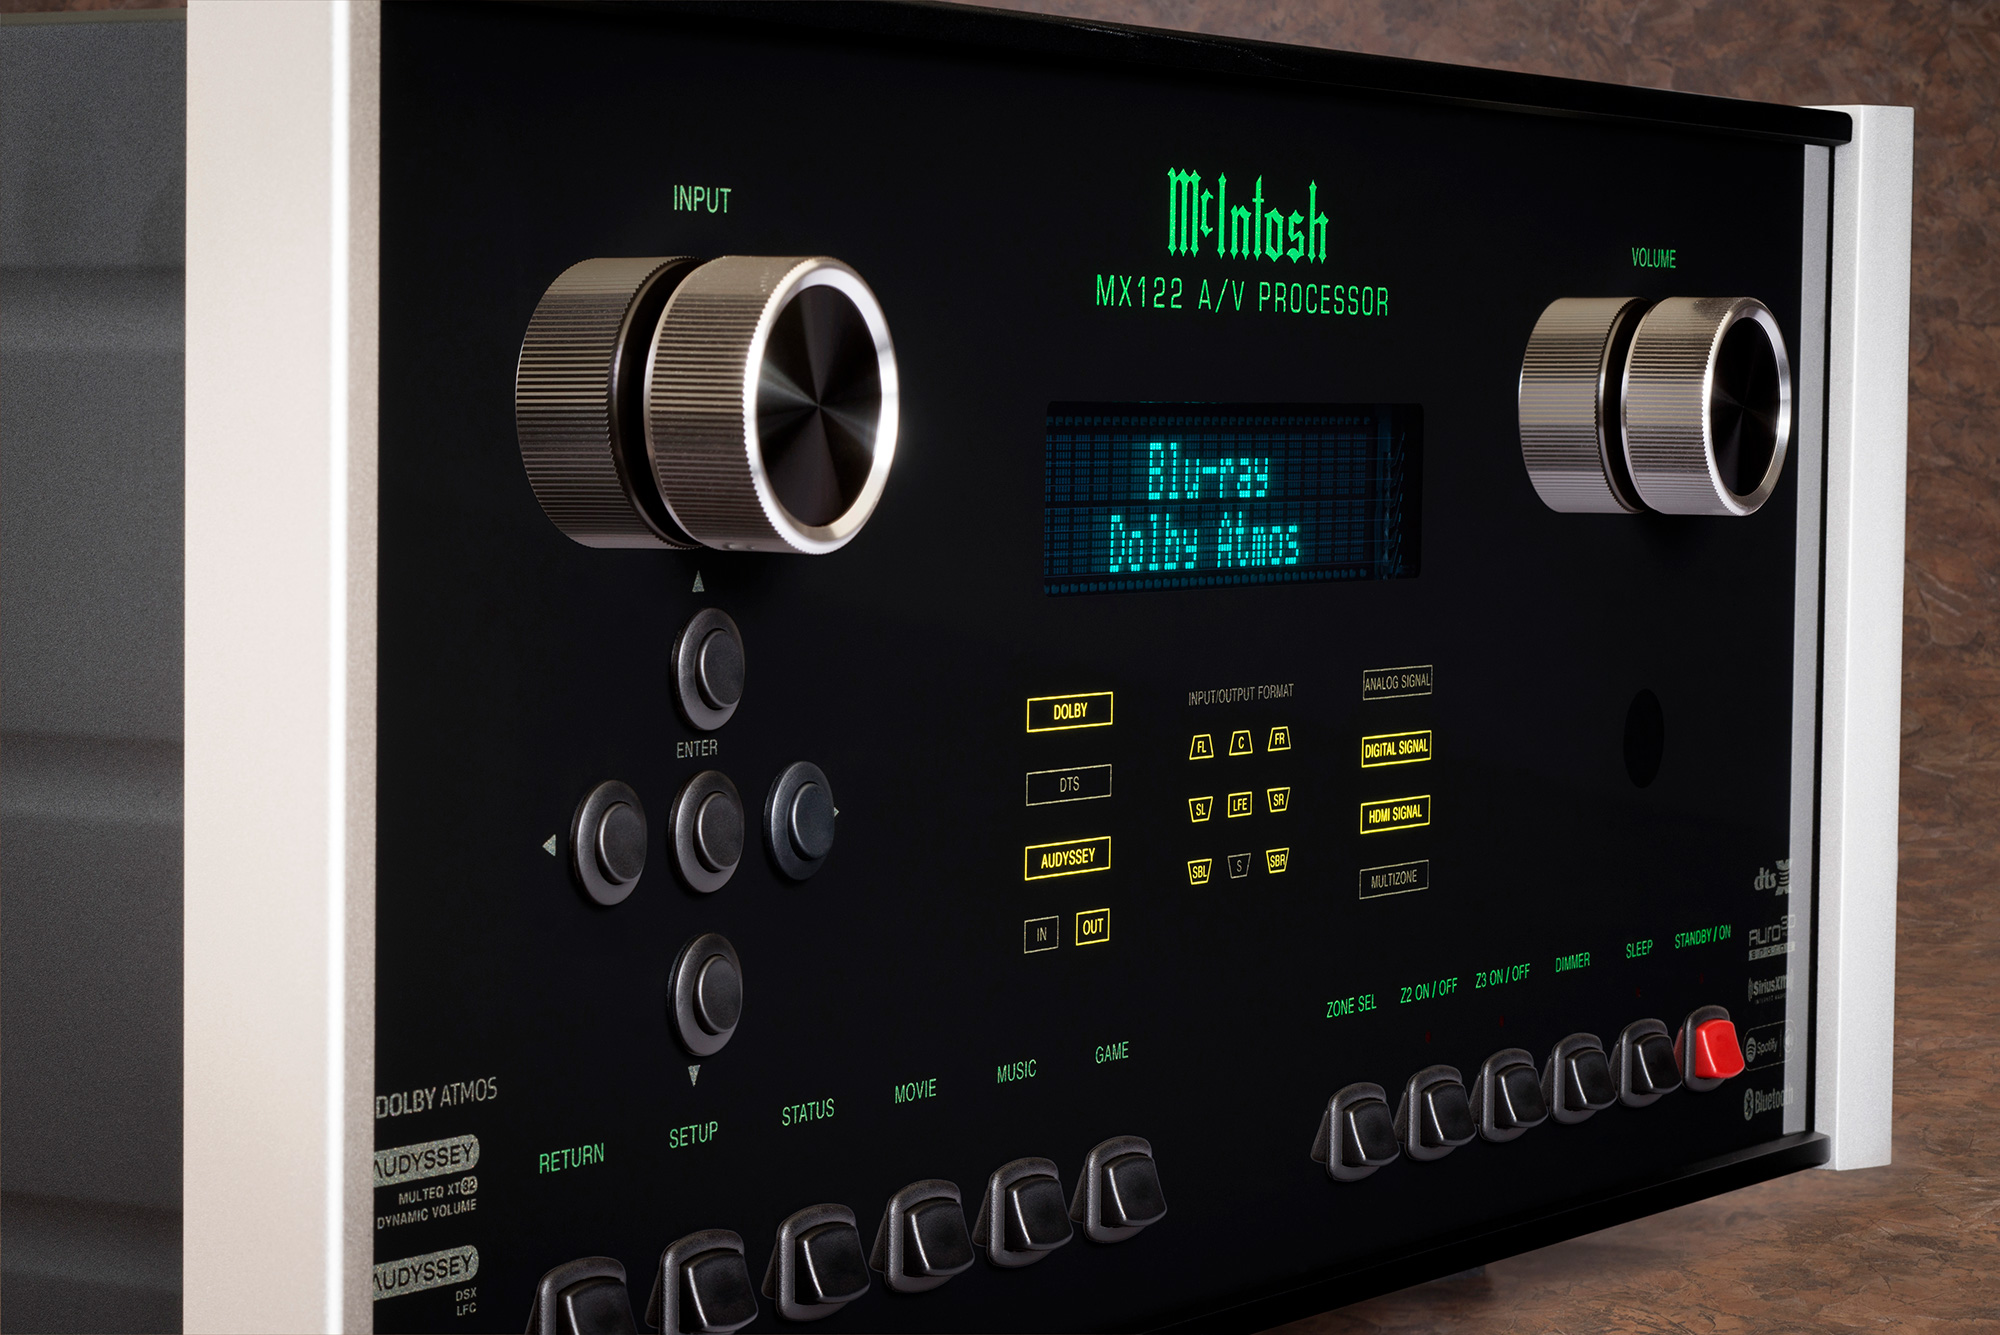 McIntosh Audio/Video Processors for Home Theater Systems